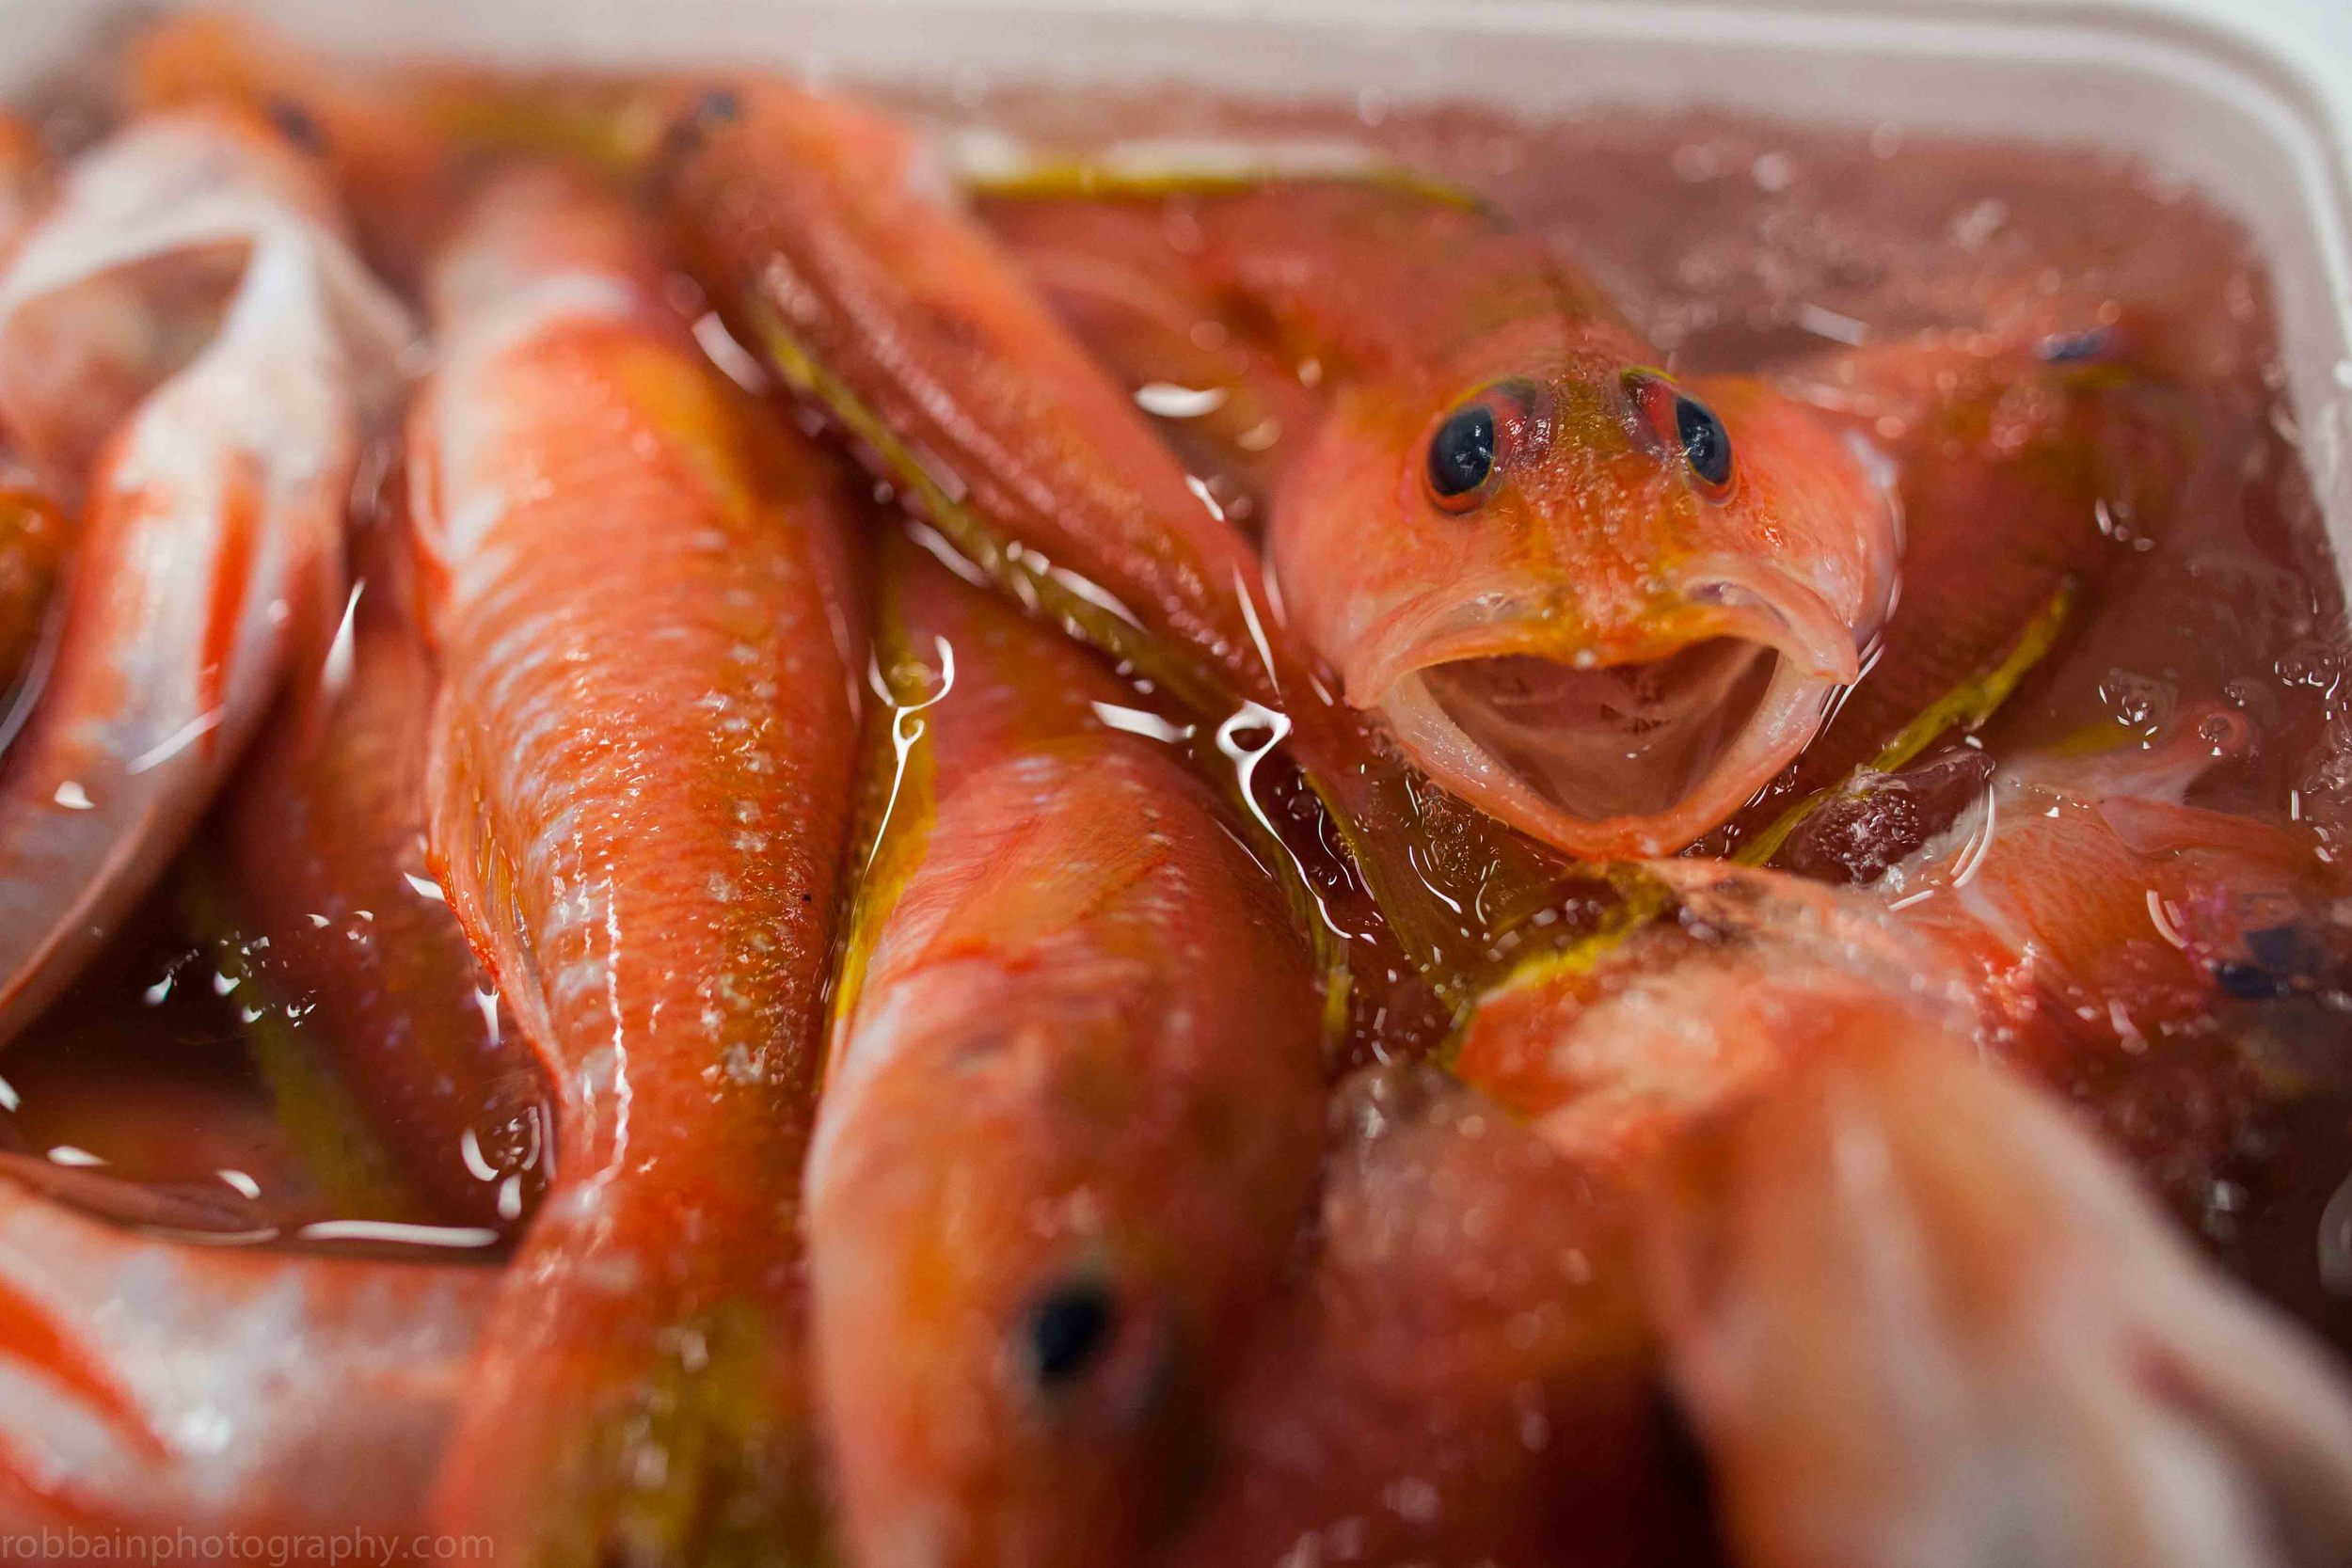 Photo 5. Box orange fish close up.jpg